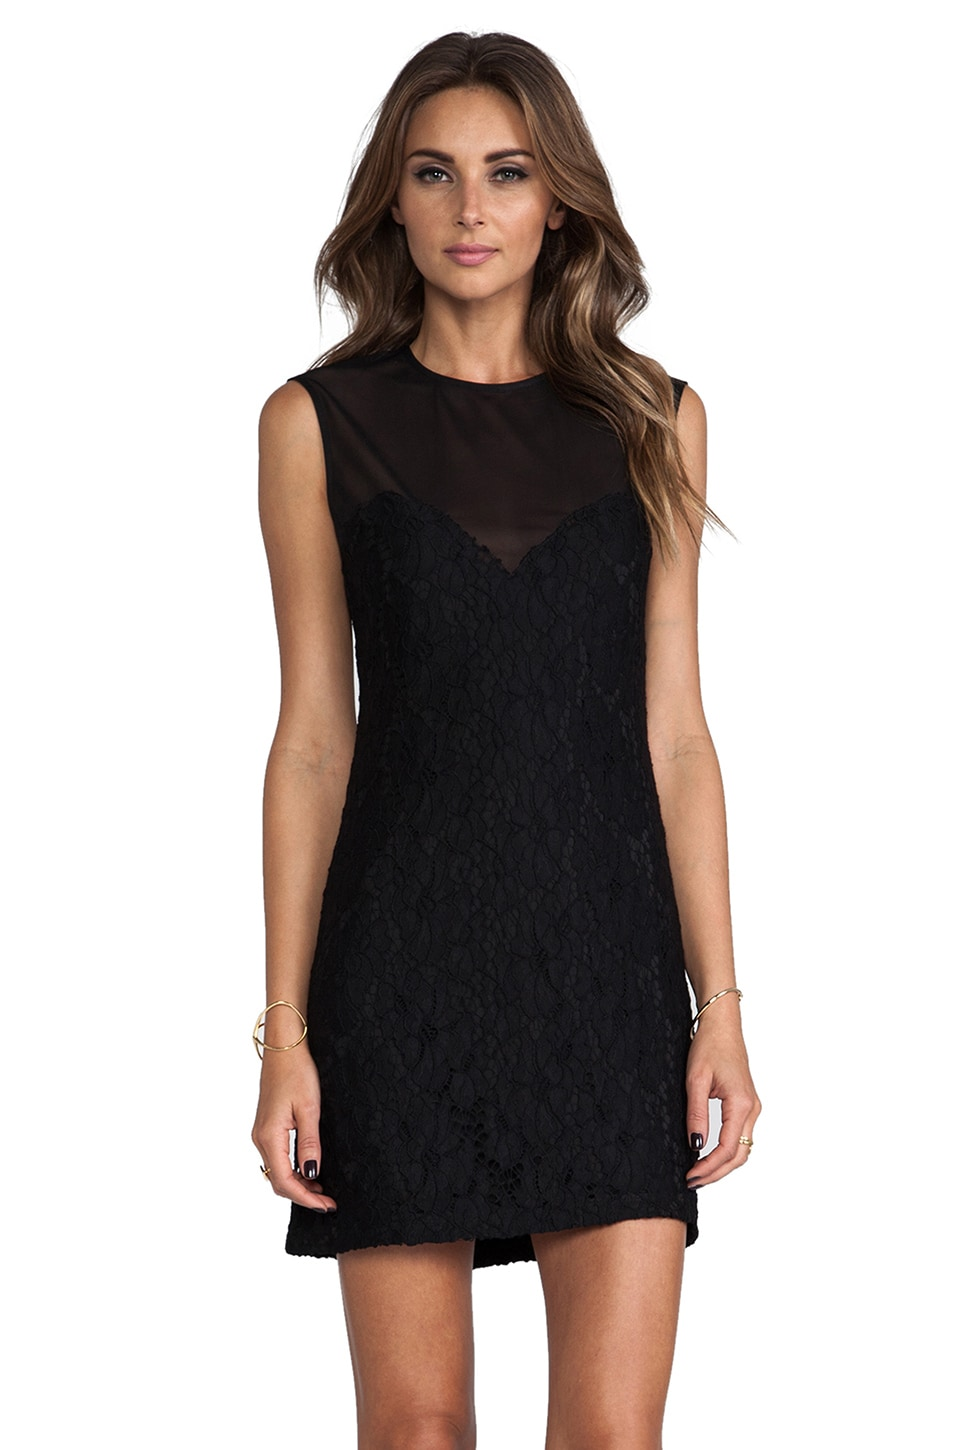 Dolce Vita Maelee Dress in Black